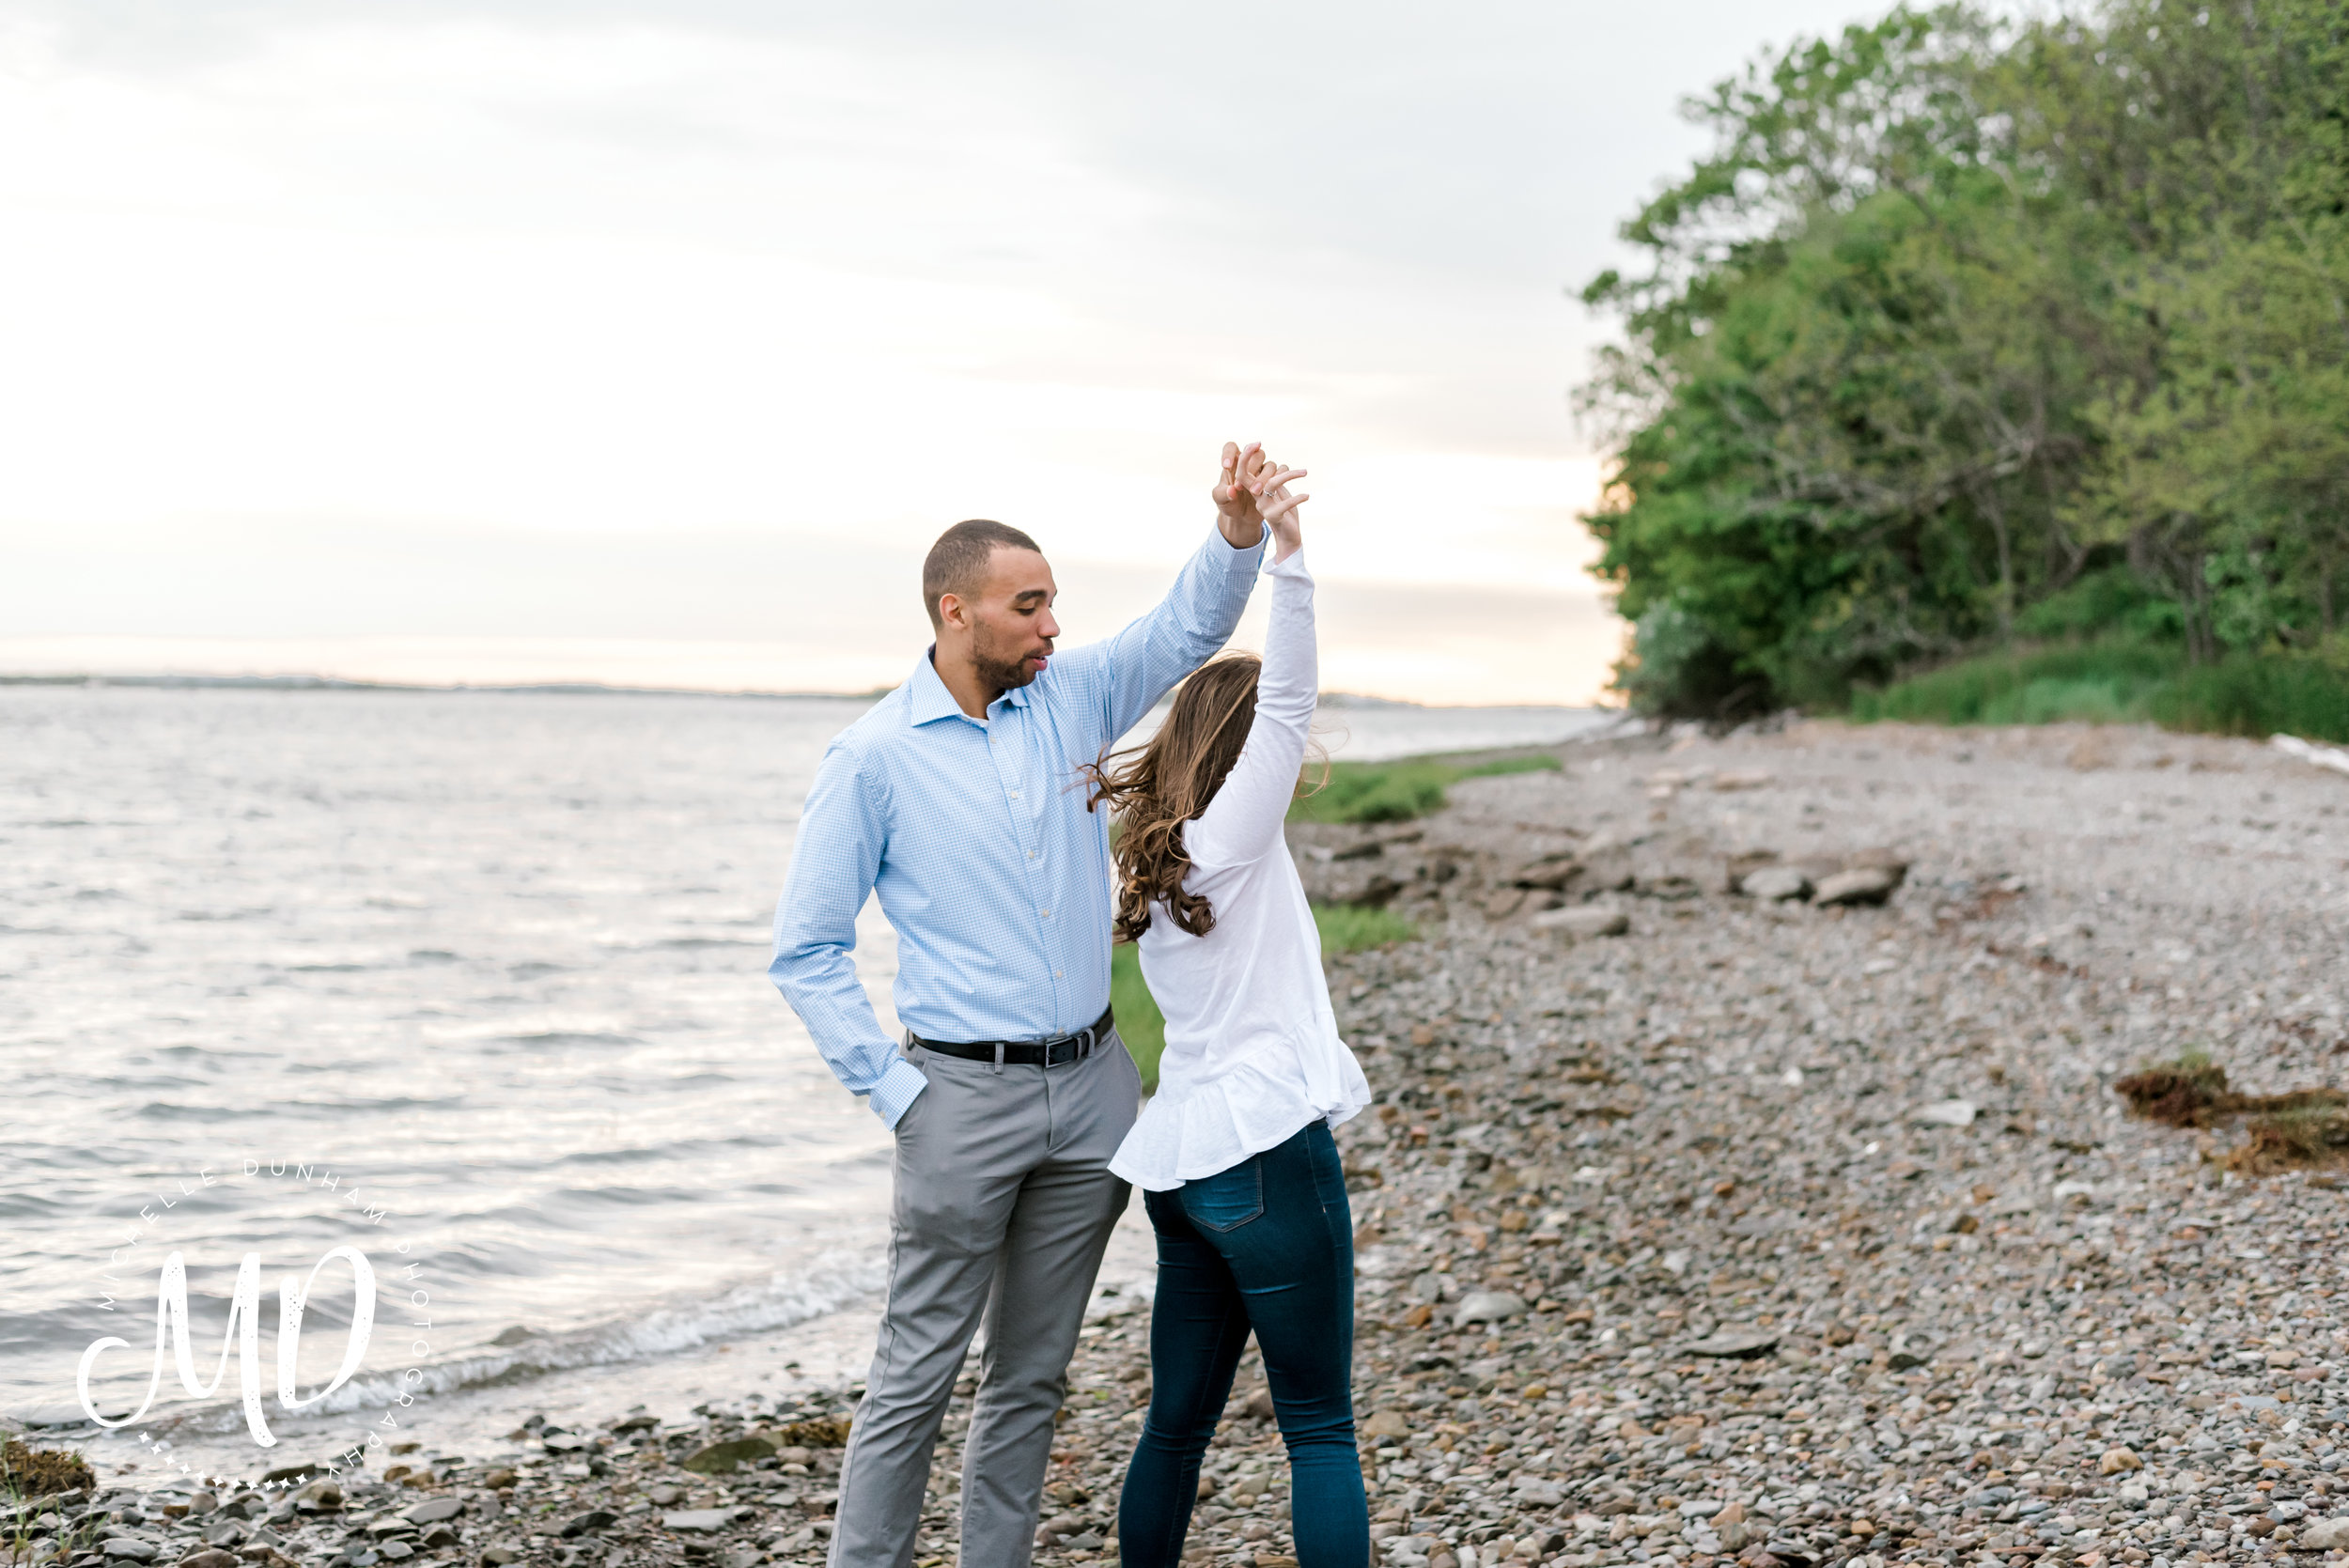 worlds_end_hingham_engagement_boston_cape_cod_wedding_photographer_michelle_dunham_photography-138.jpg